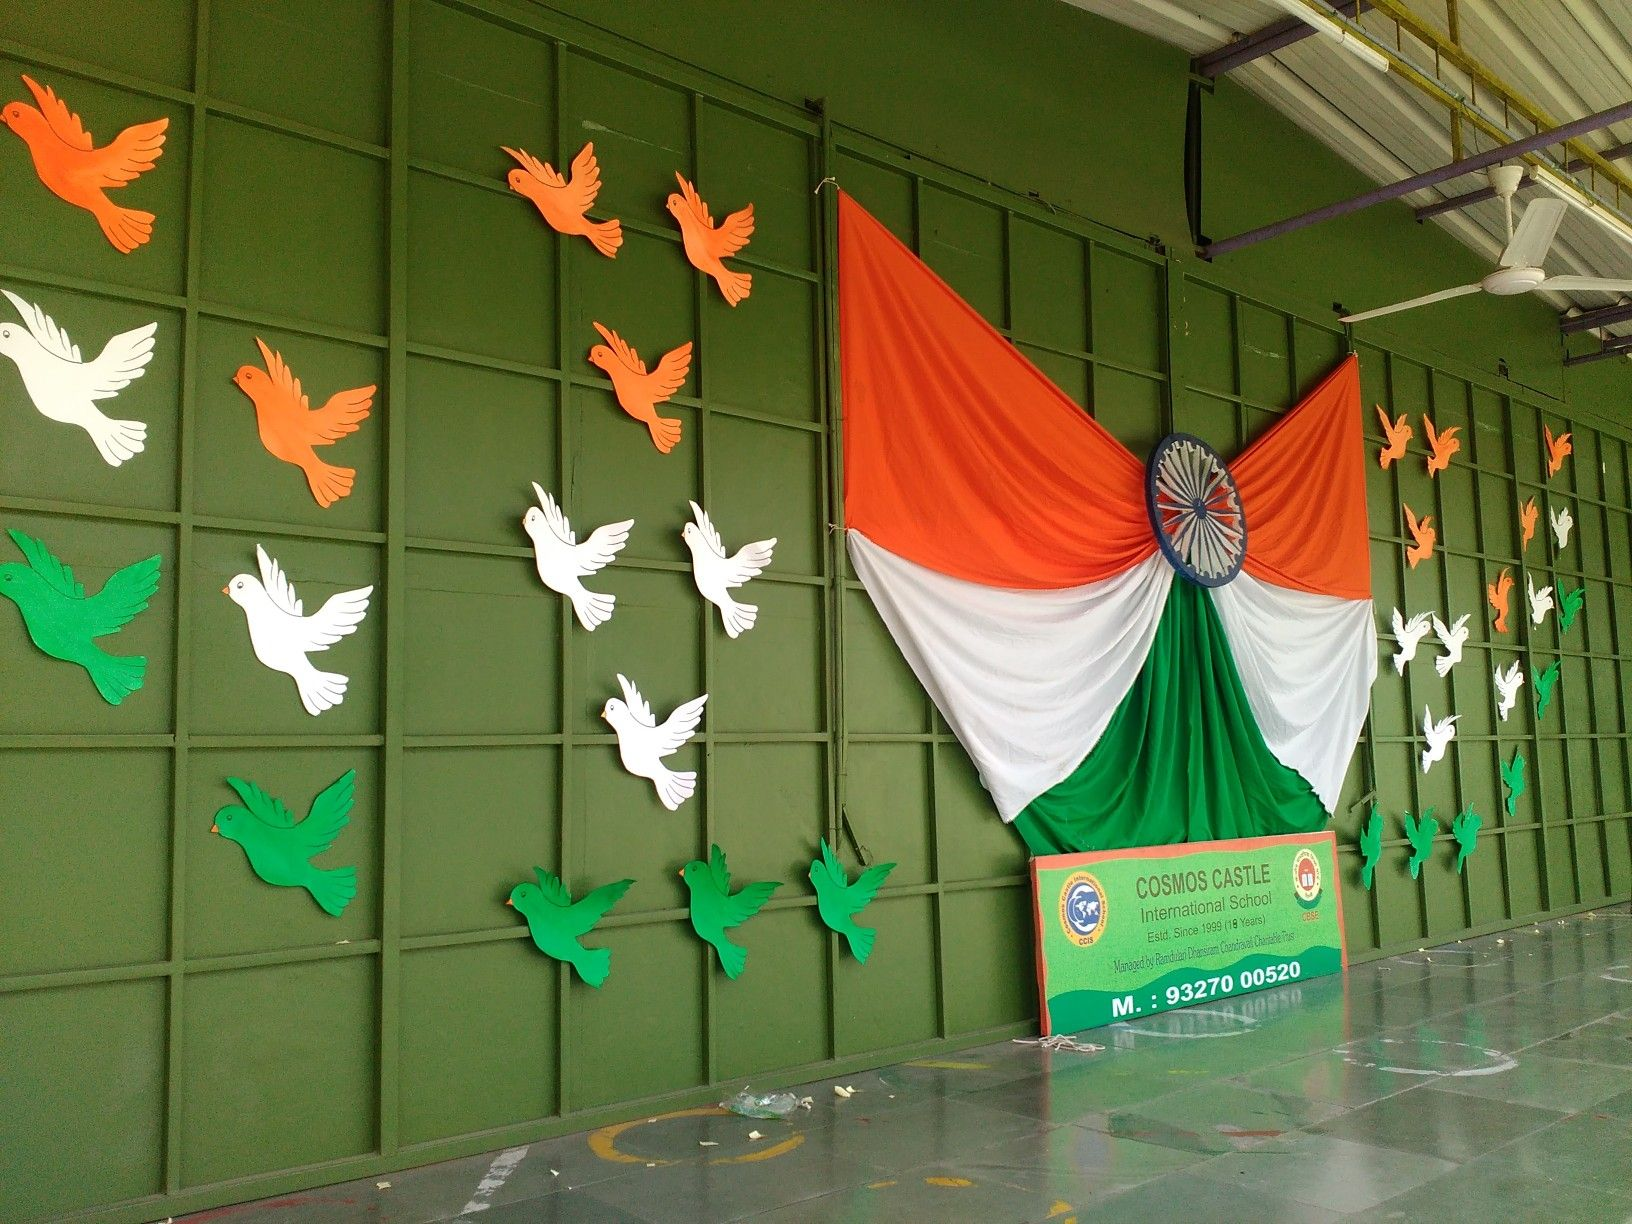 Stage Decoration Ideas For Teachers Day Celebration   valoblogi com Backdrop ideas stage decoration celebration of republic day also rh nl  pinterest